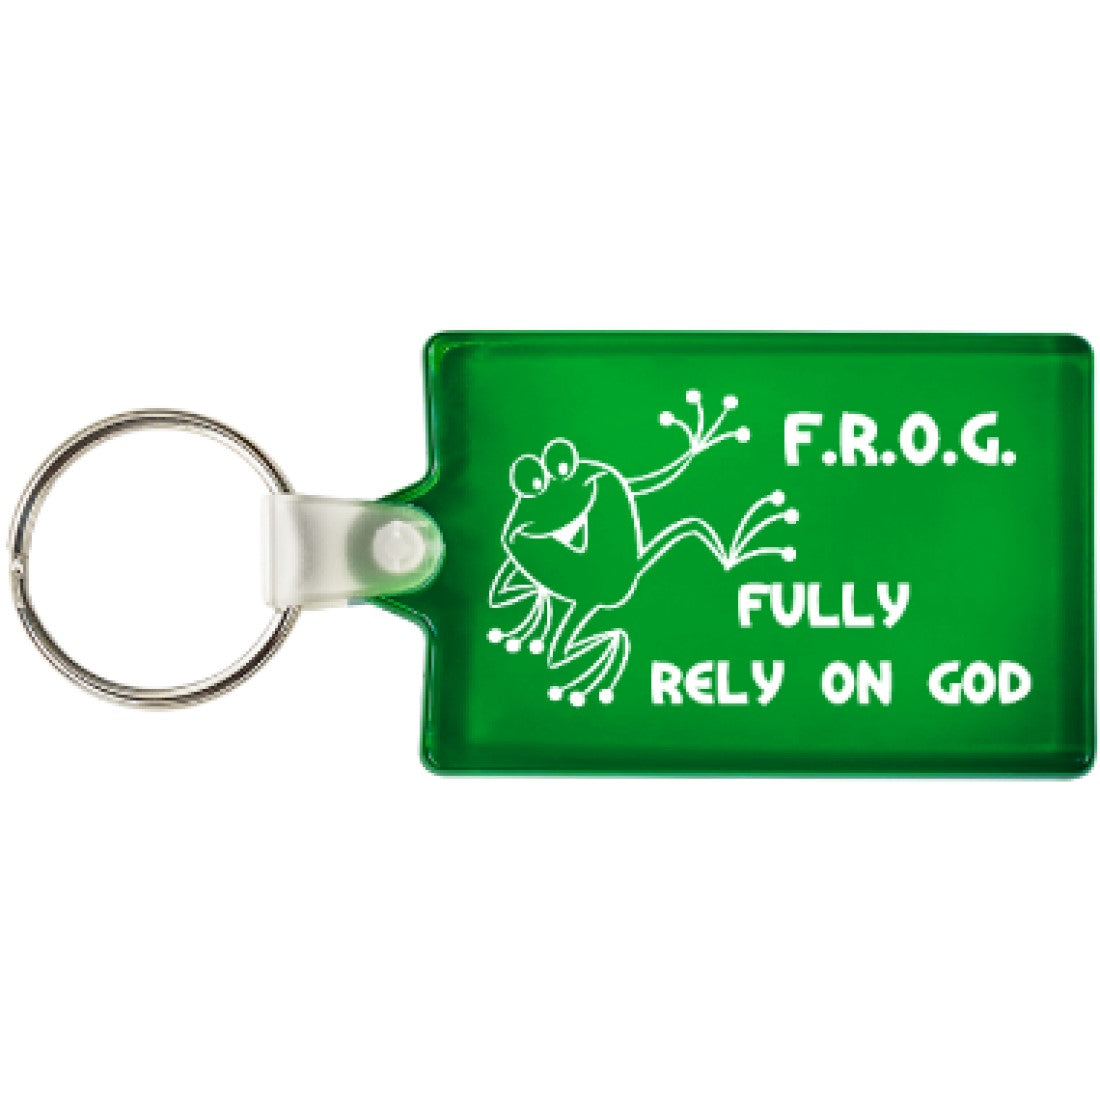 Green Fully Rely On God Soft Plastic Frog Keychains (100 Count) Bulk